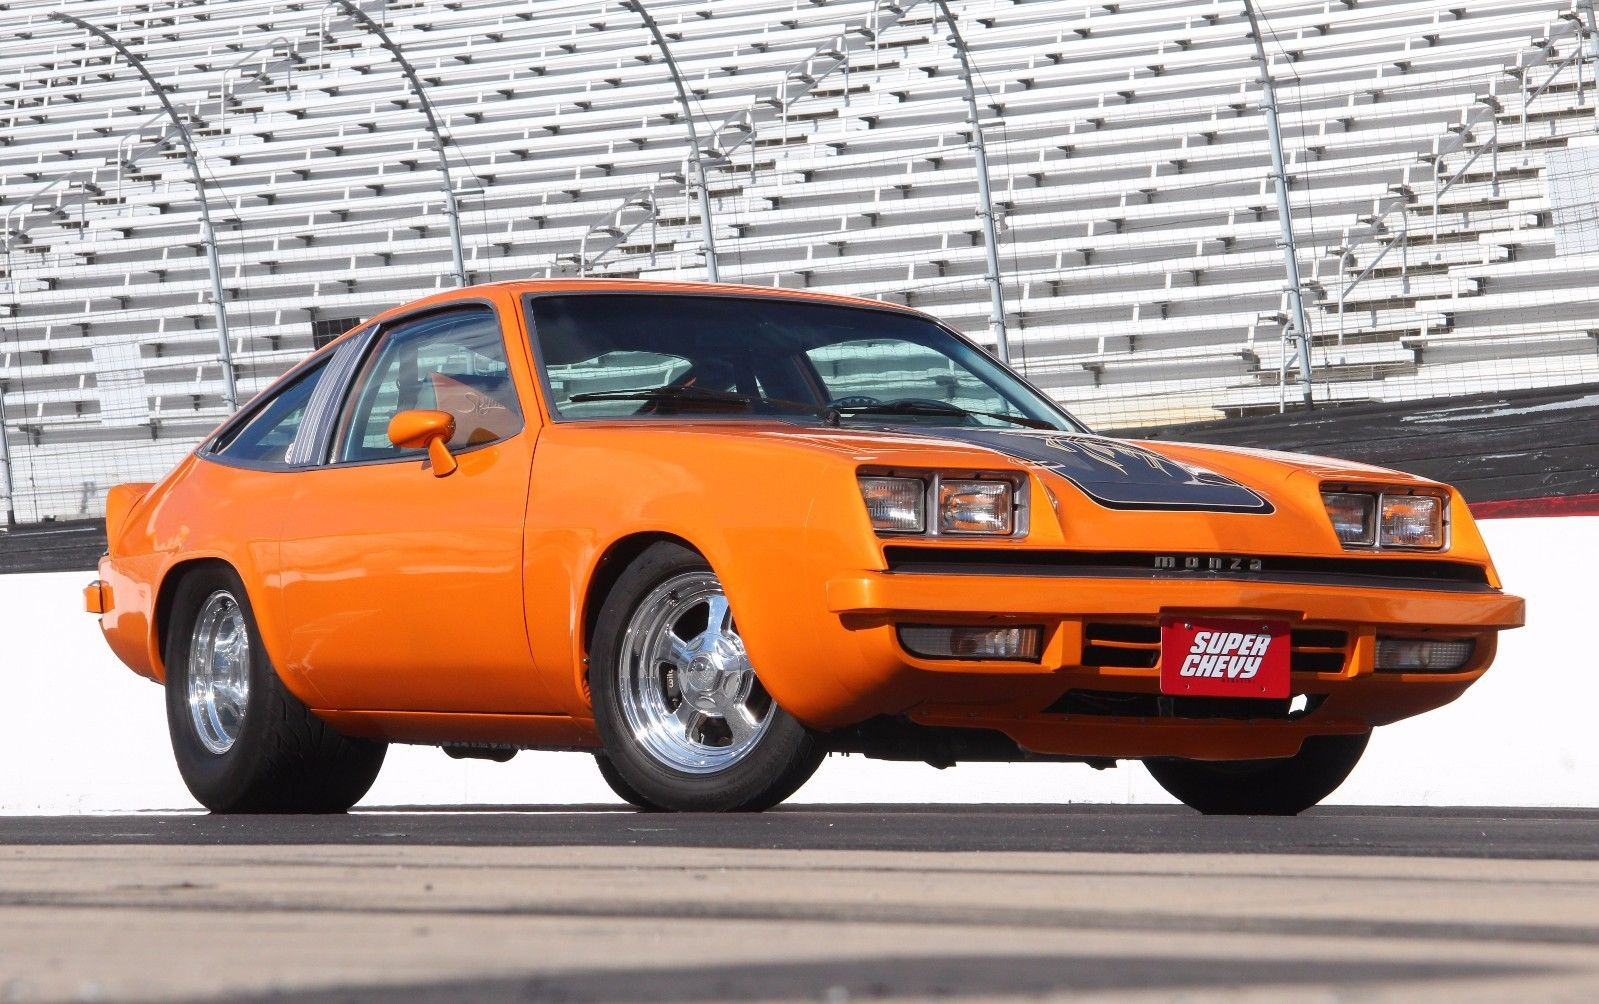 Money No Object: This Sweet 1977 Chevrolet Monza Is The Most Wild Do-It-All Car We've Ever Seen!